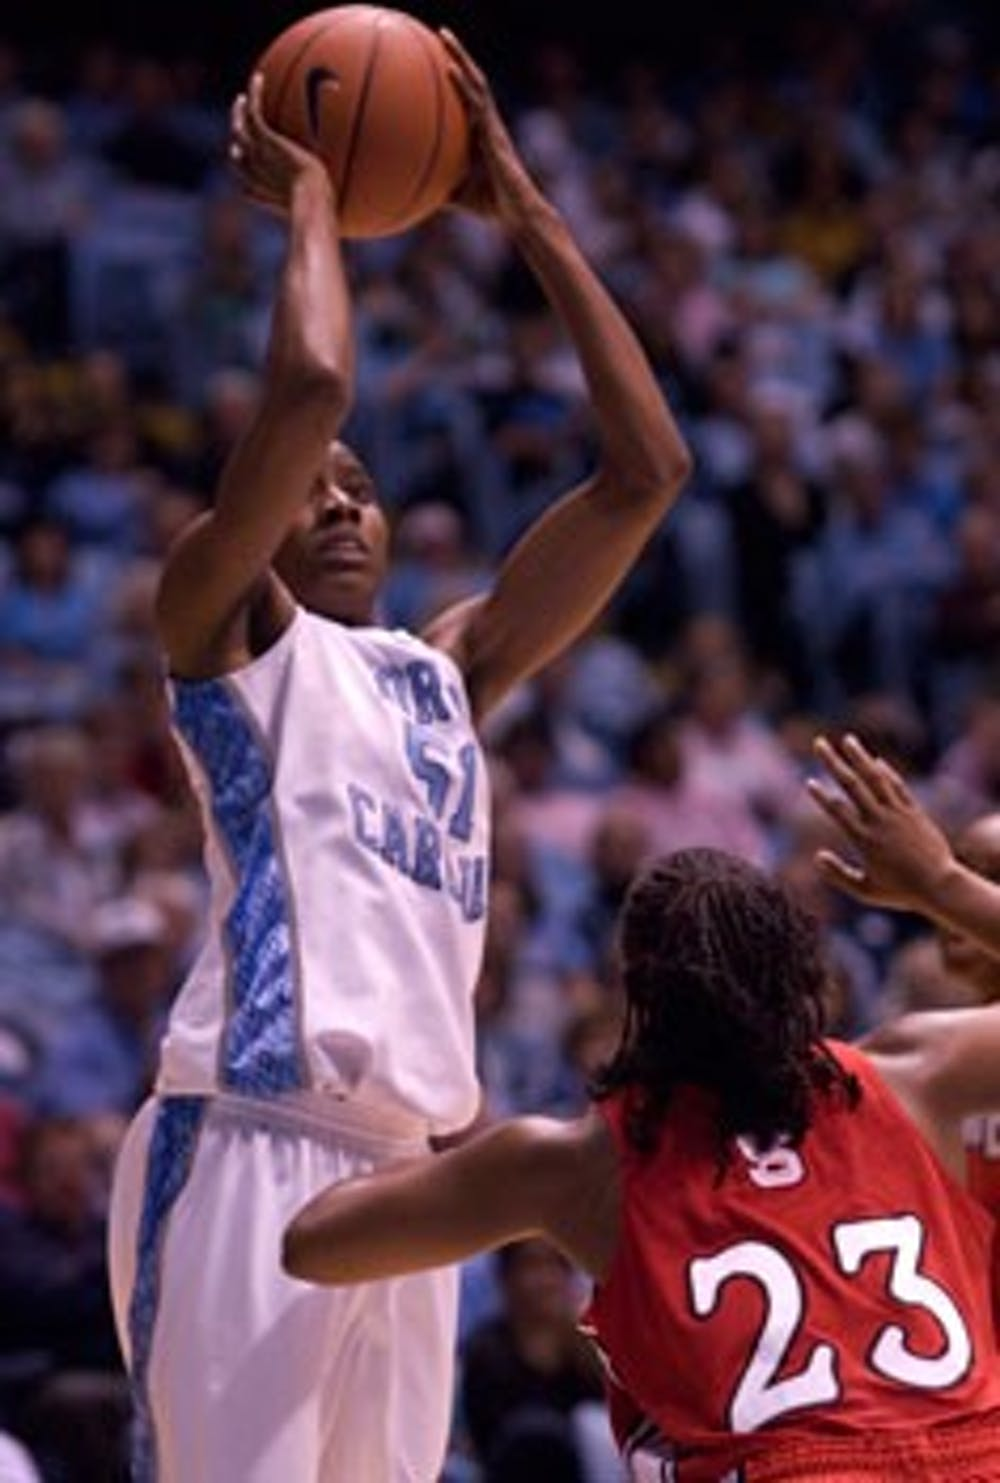 Former UNC women's basketball player Jessica Breland opts out of WNBA bubble